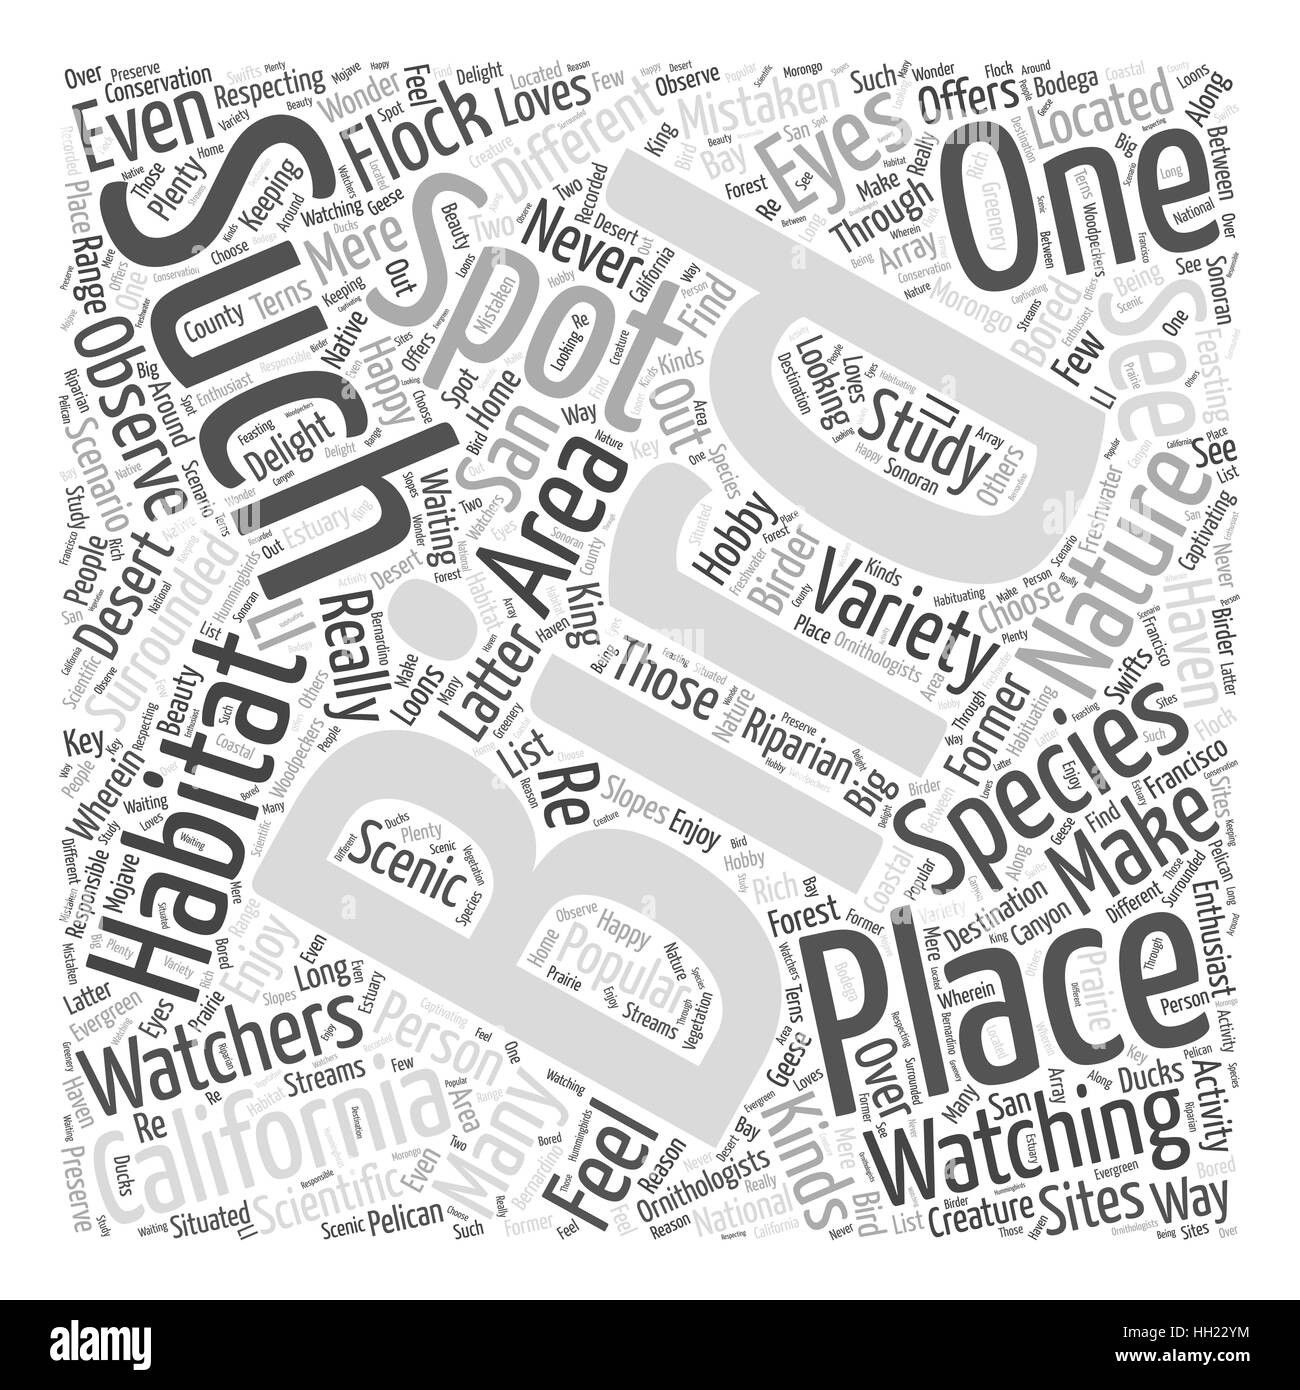 California a Haven for Bird Watching Word Cloud Concept - Stock Image